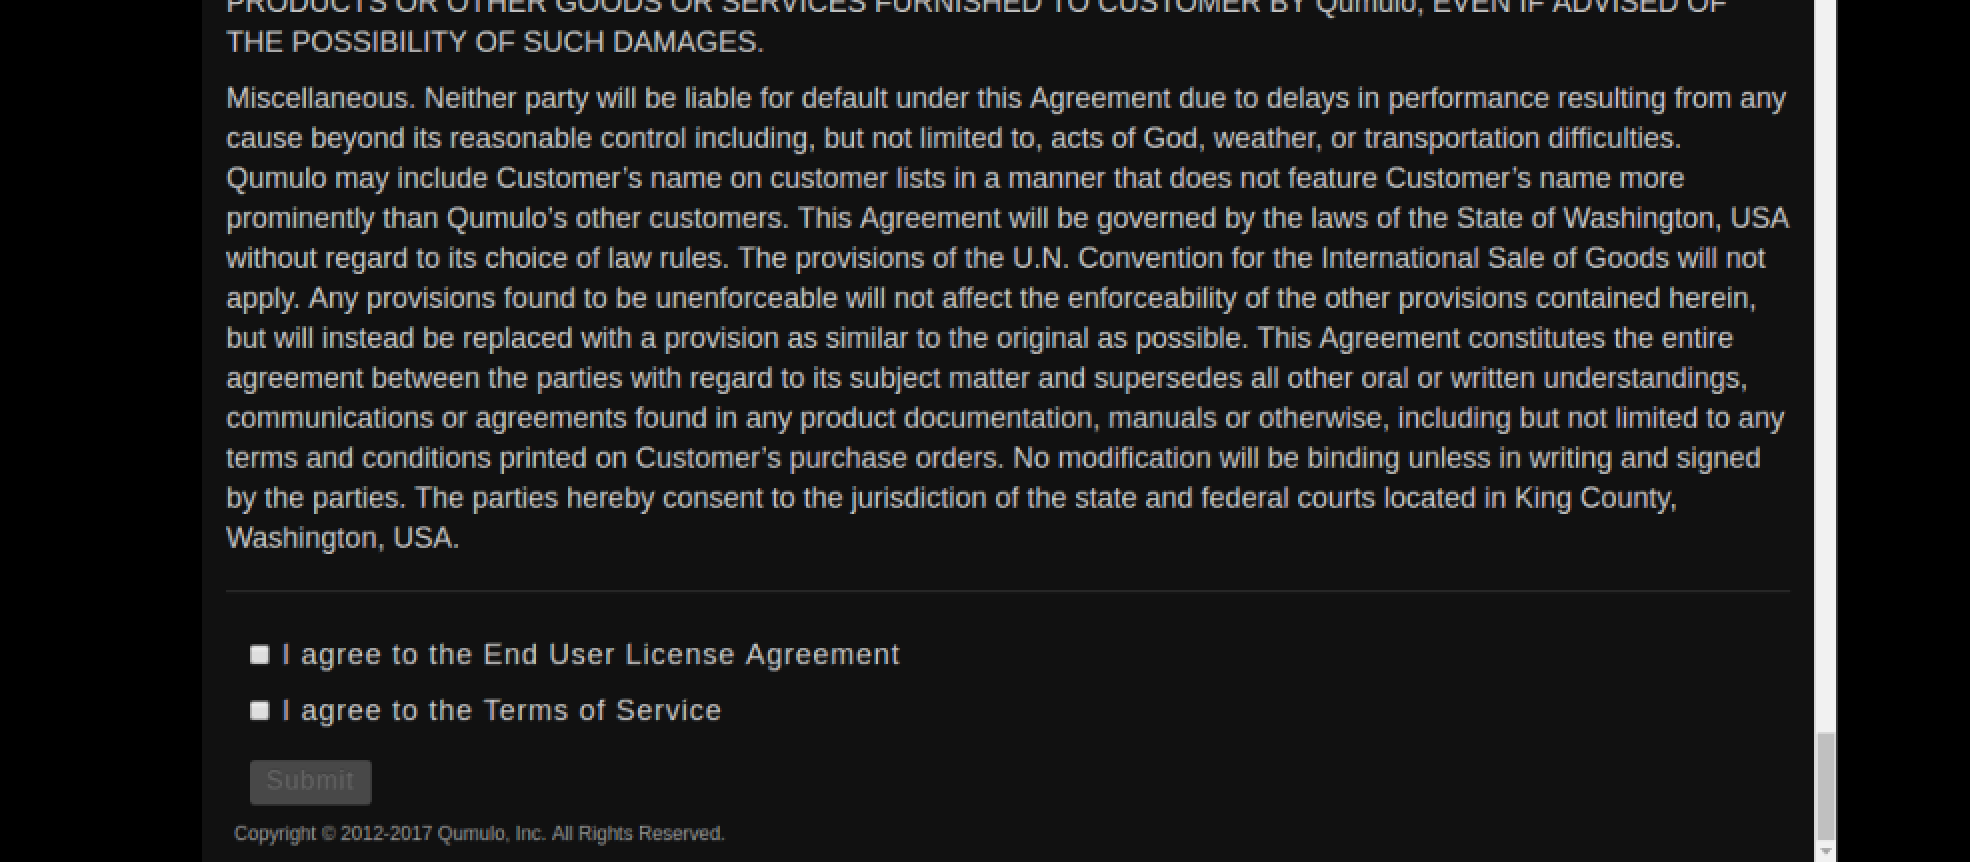 EULA agreement